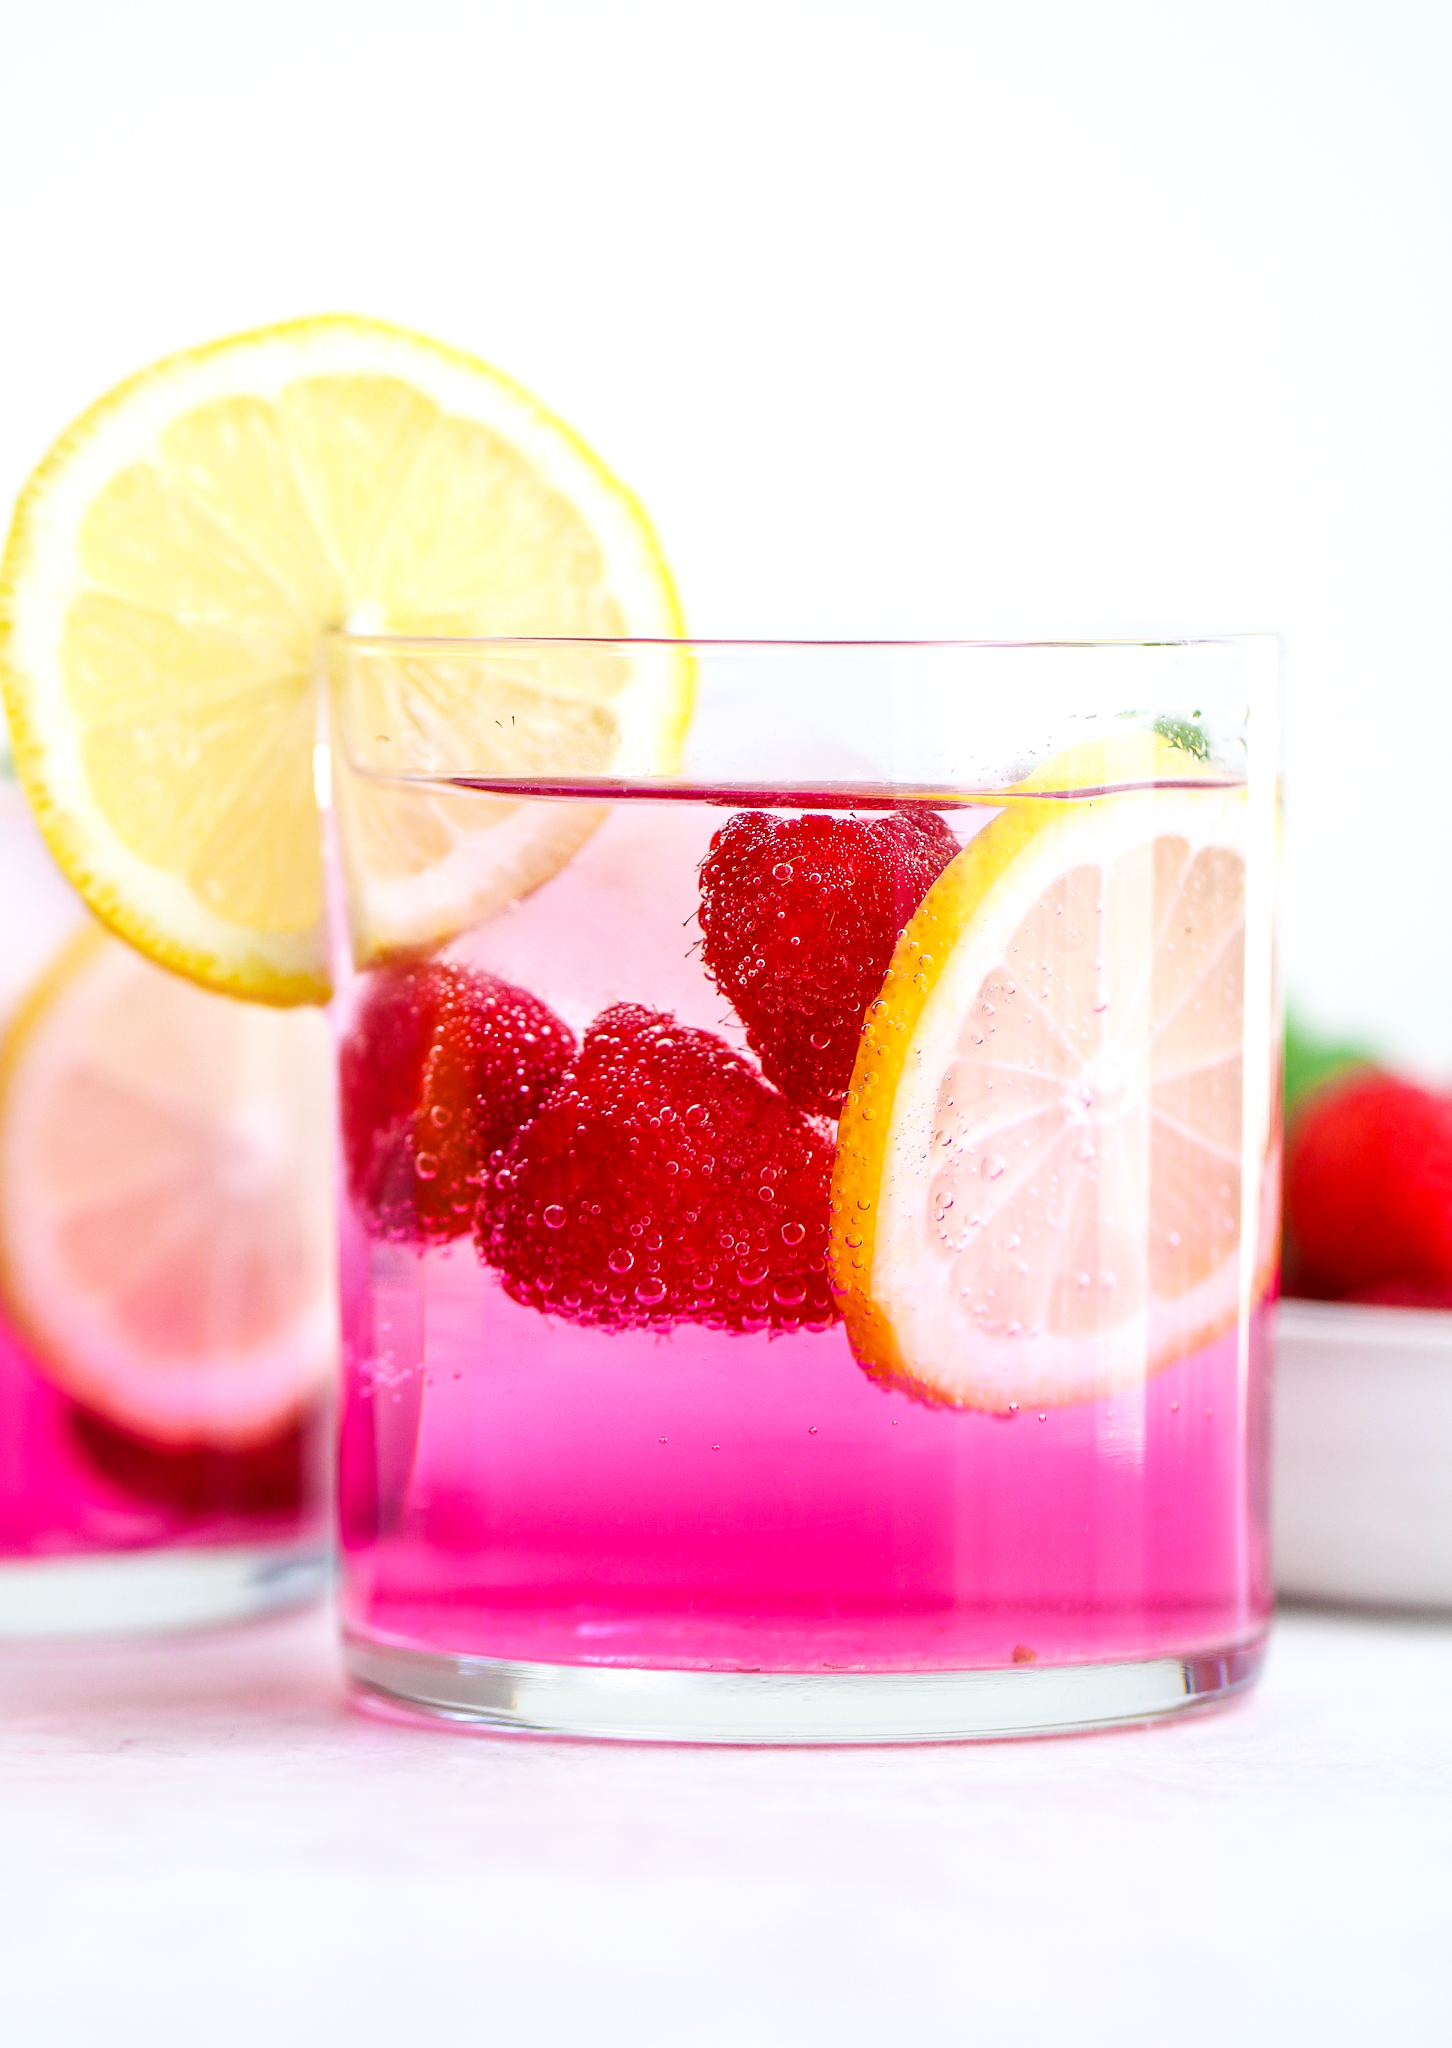 clear cocktail glass filled with pink electrolyte drink, fresh raspberries, sliced lemon and an ice cube